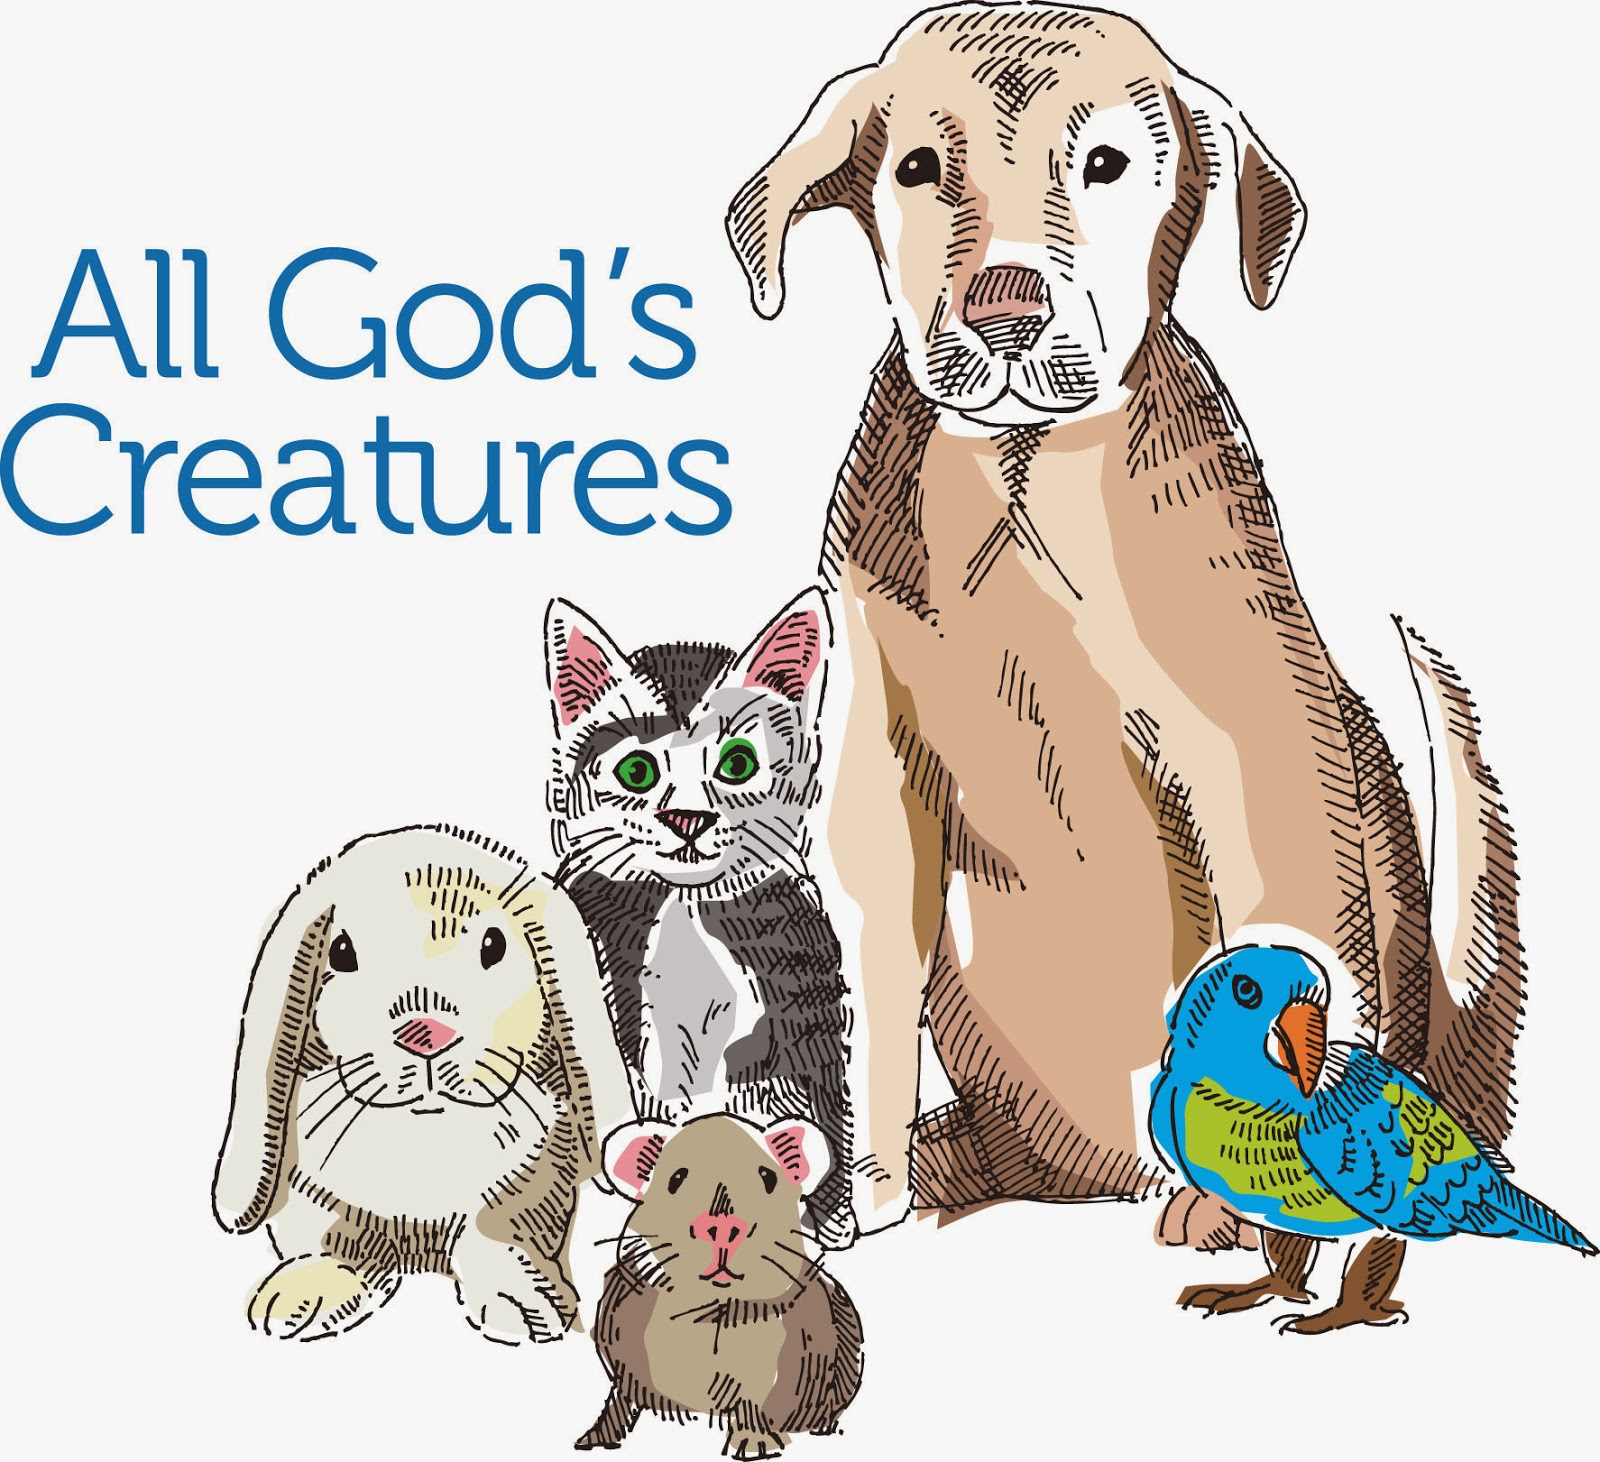 St Mary's Blog: Blessing of the animals on Saturday Oct 4.